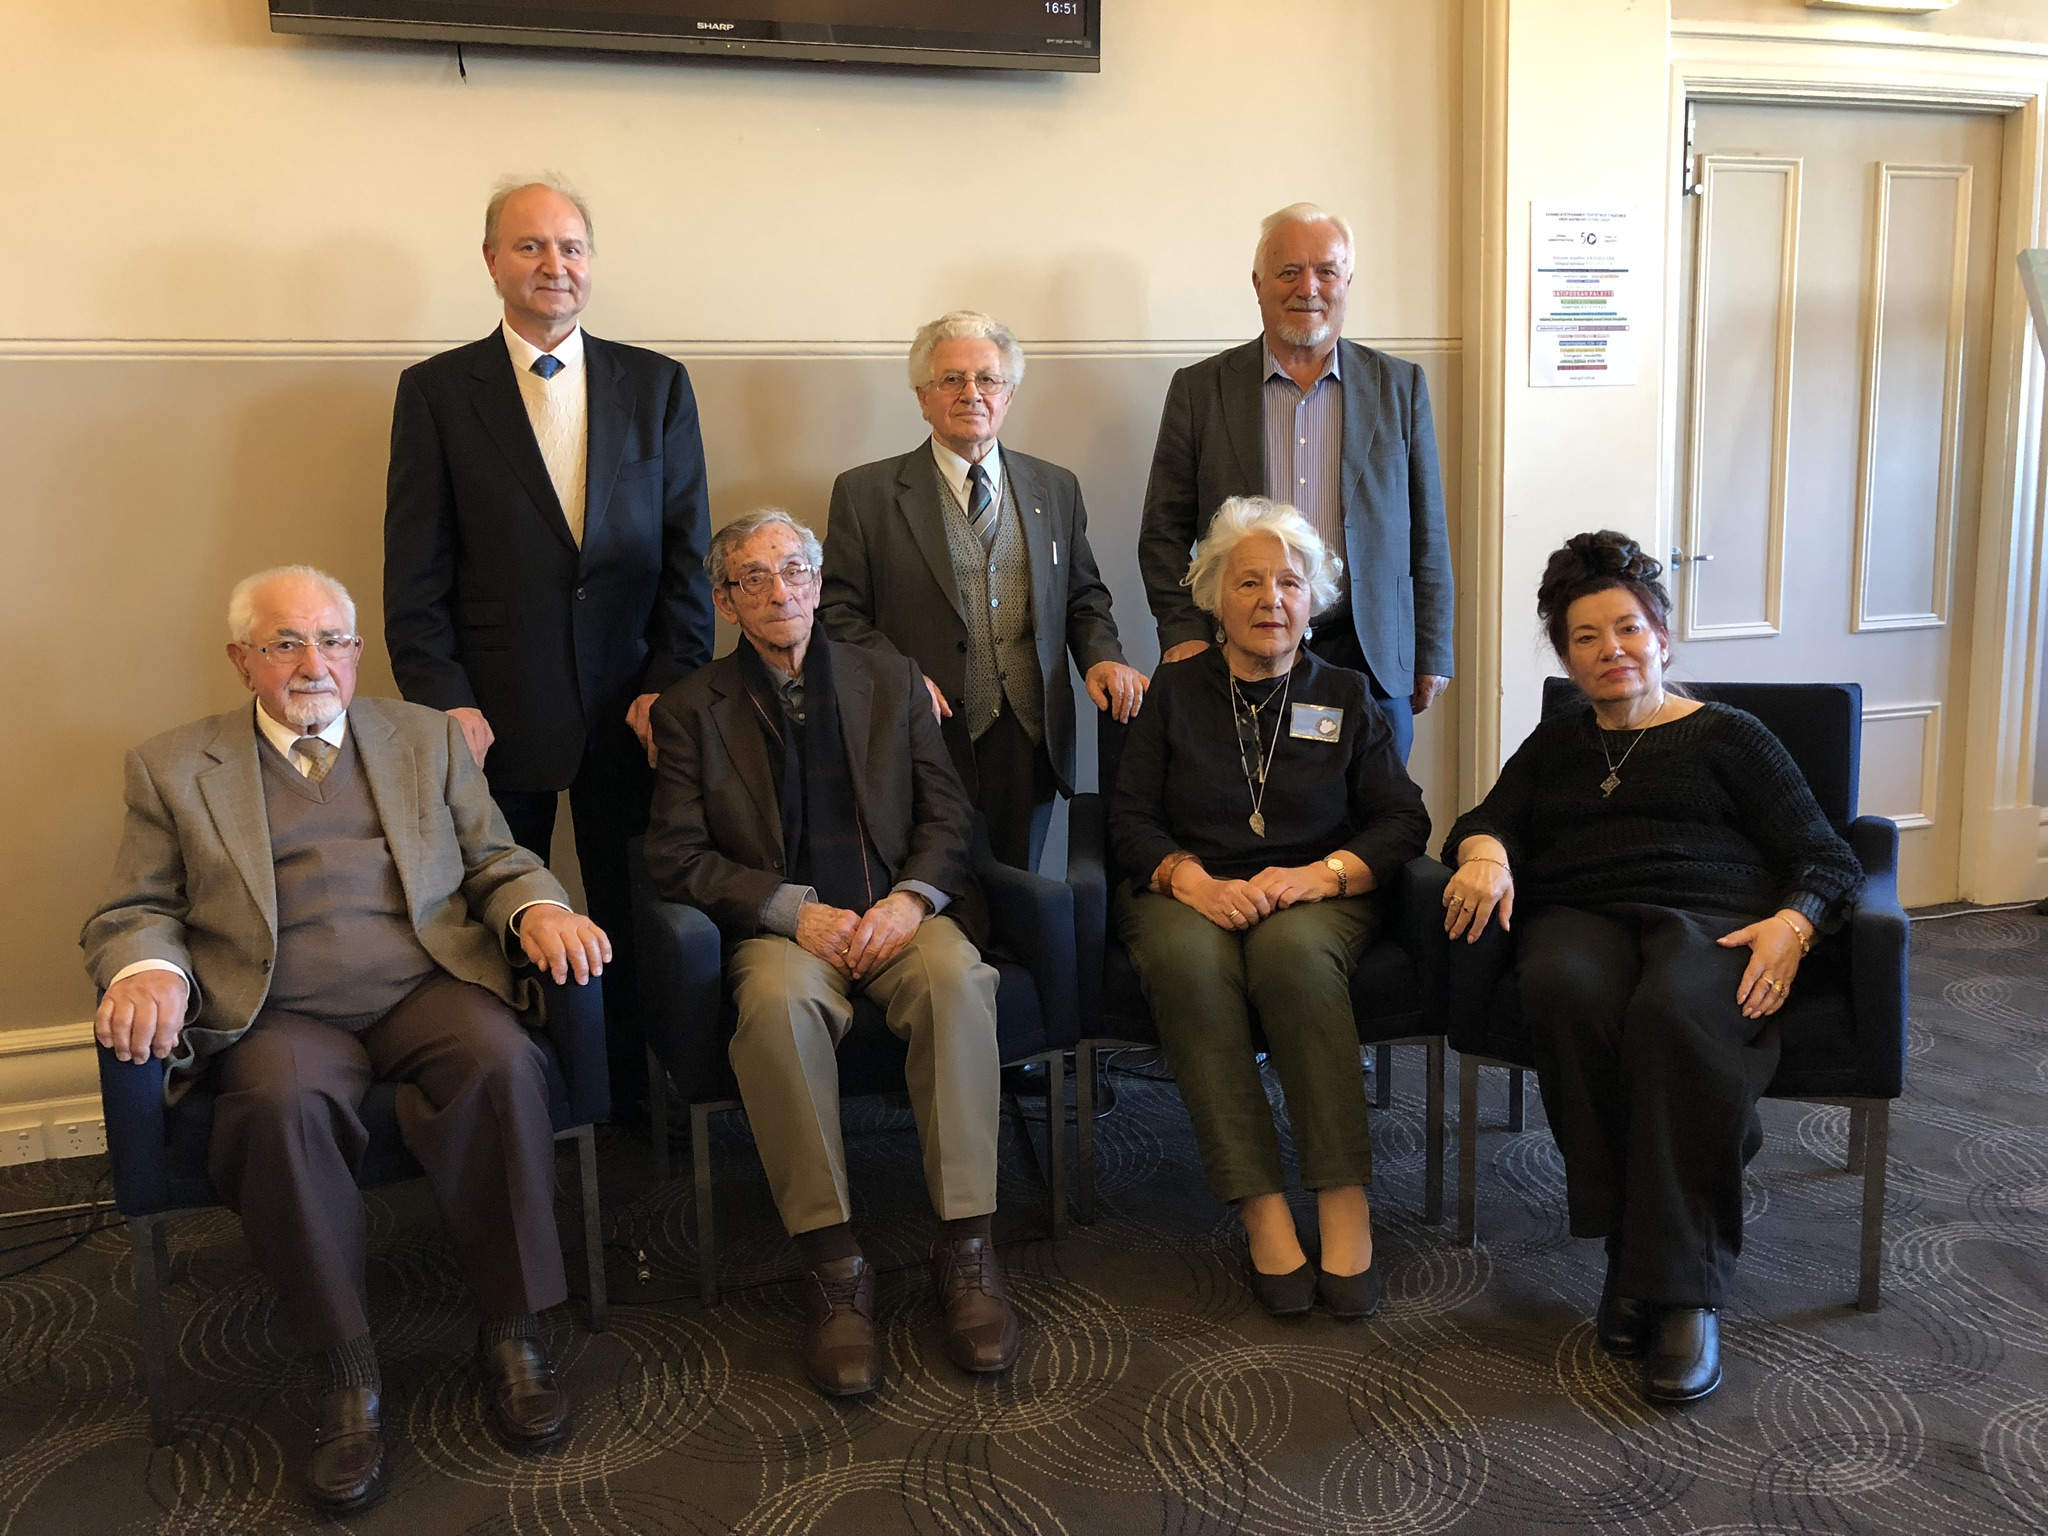 Founding members, past Presidents with current President 5